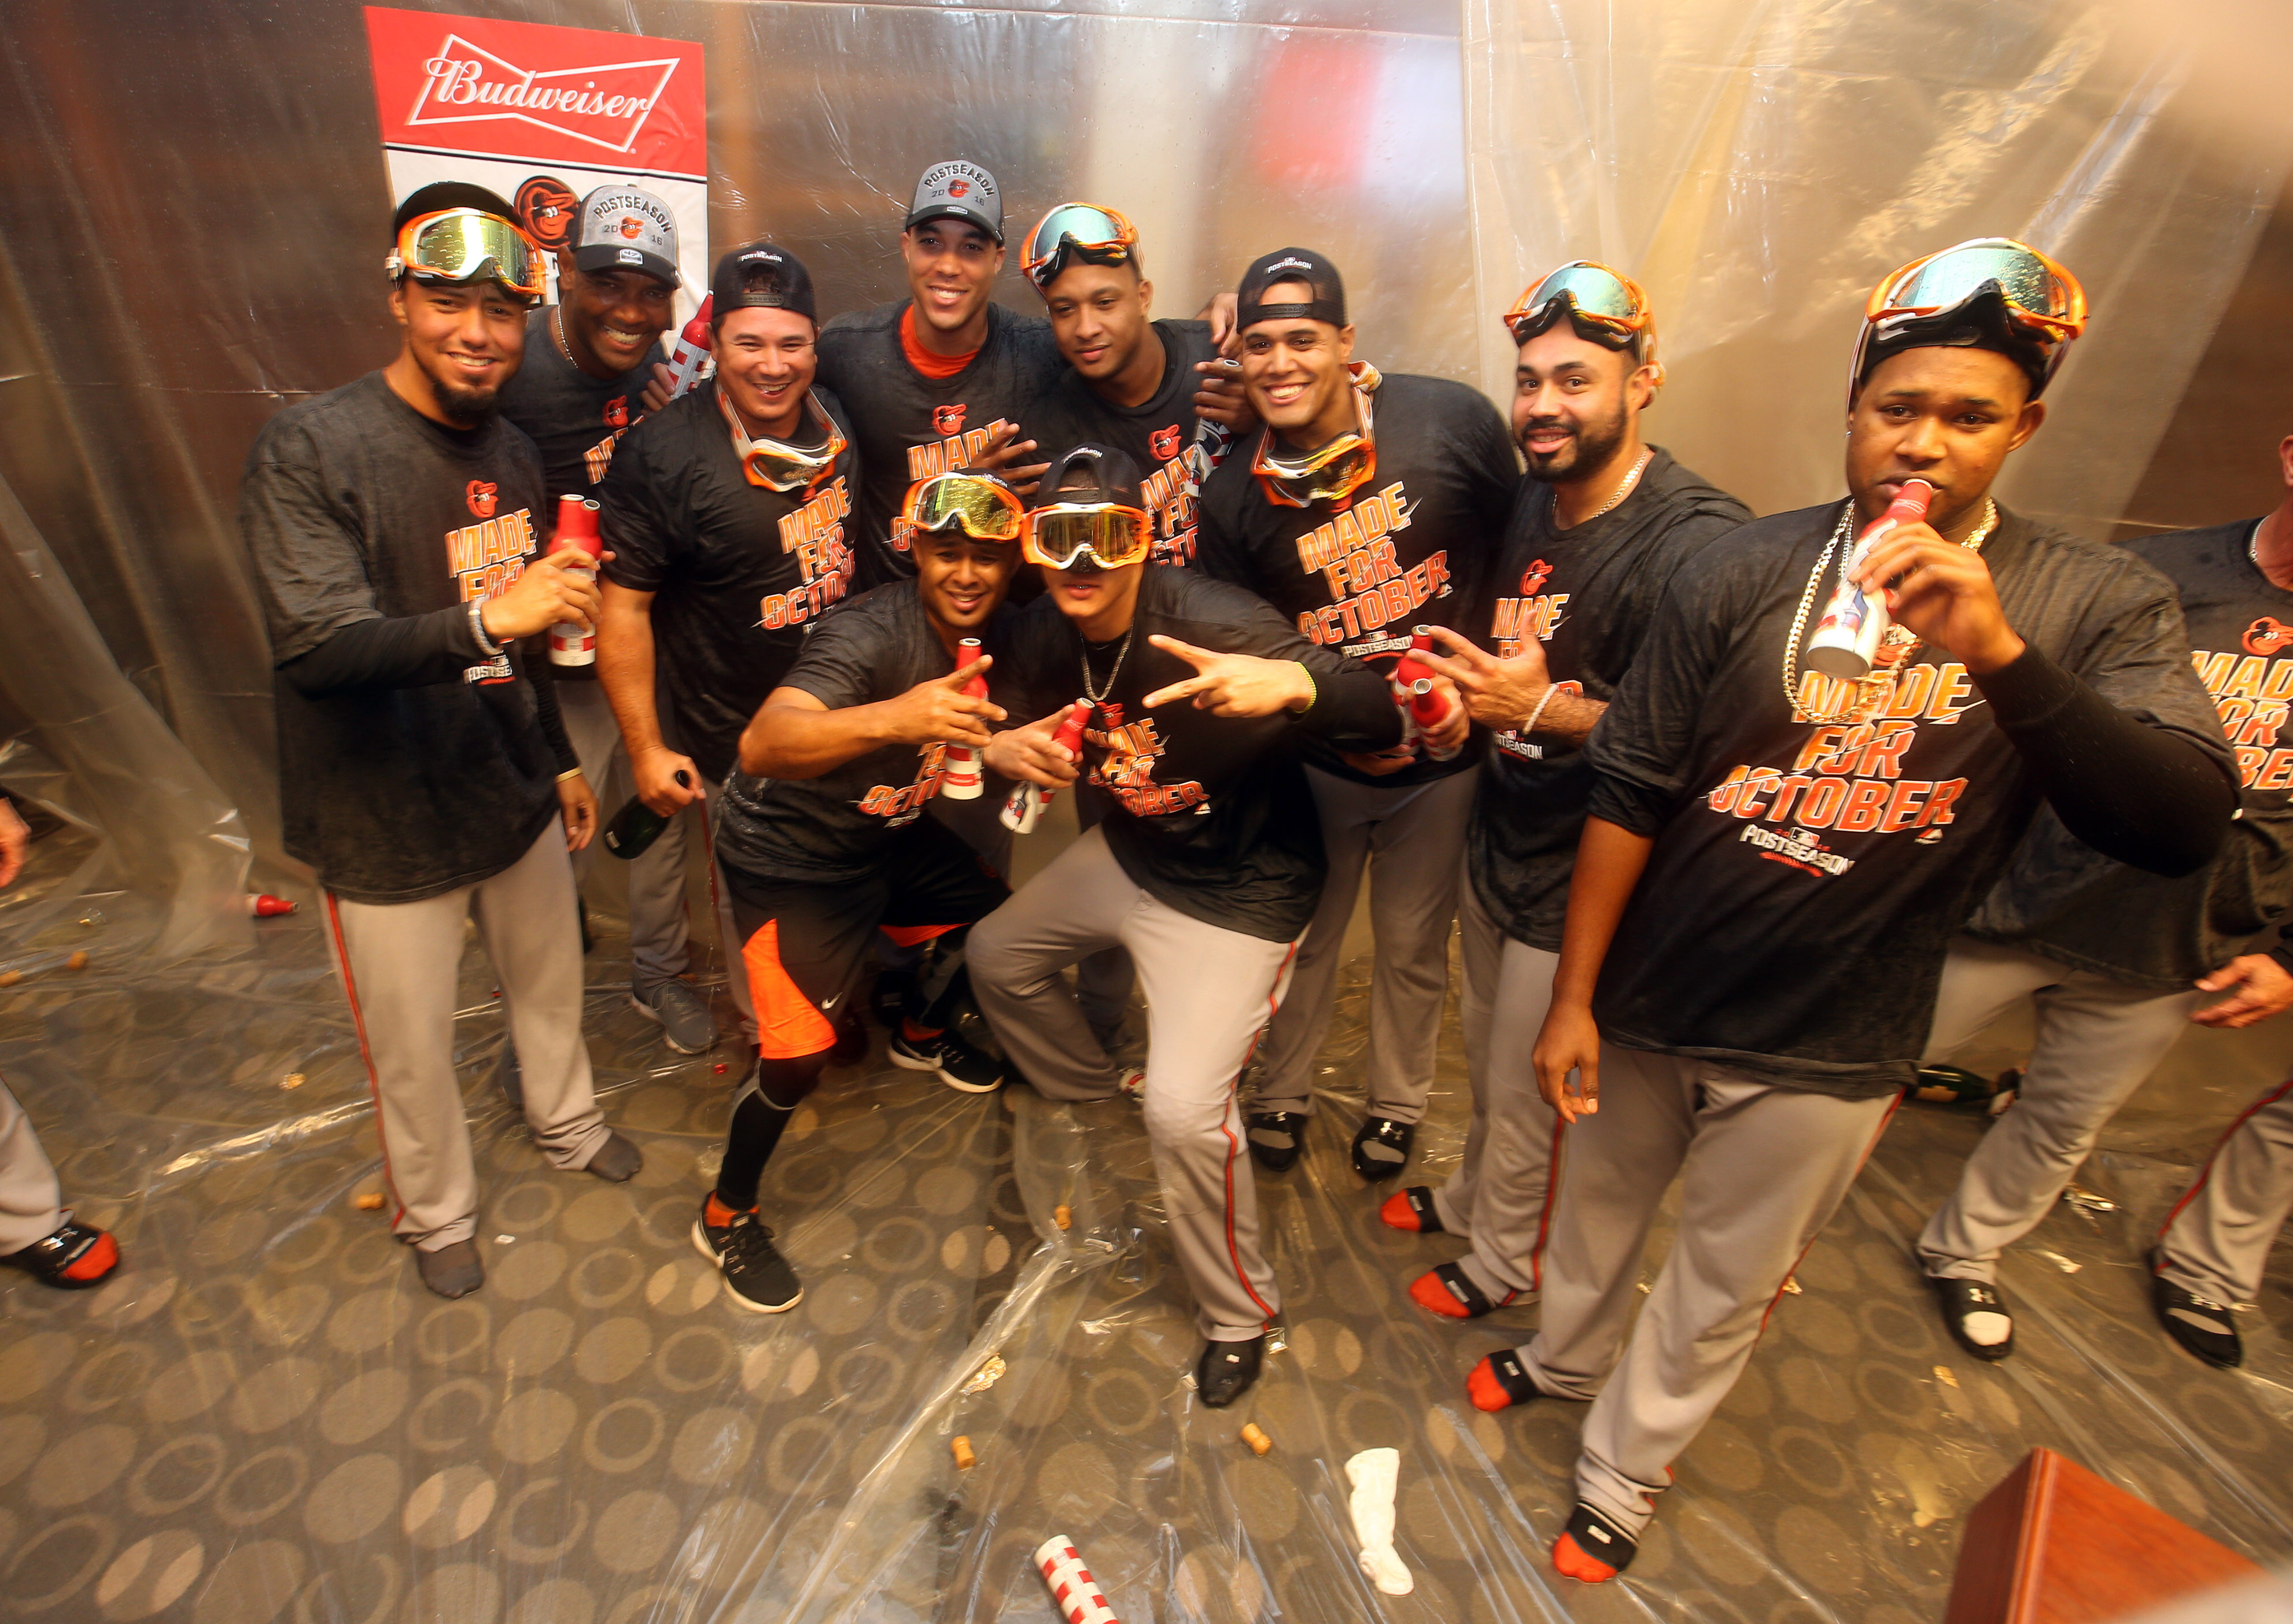 A number of Orioles players celebrate clinching a postseason spot.